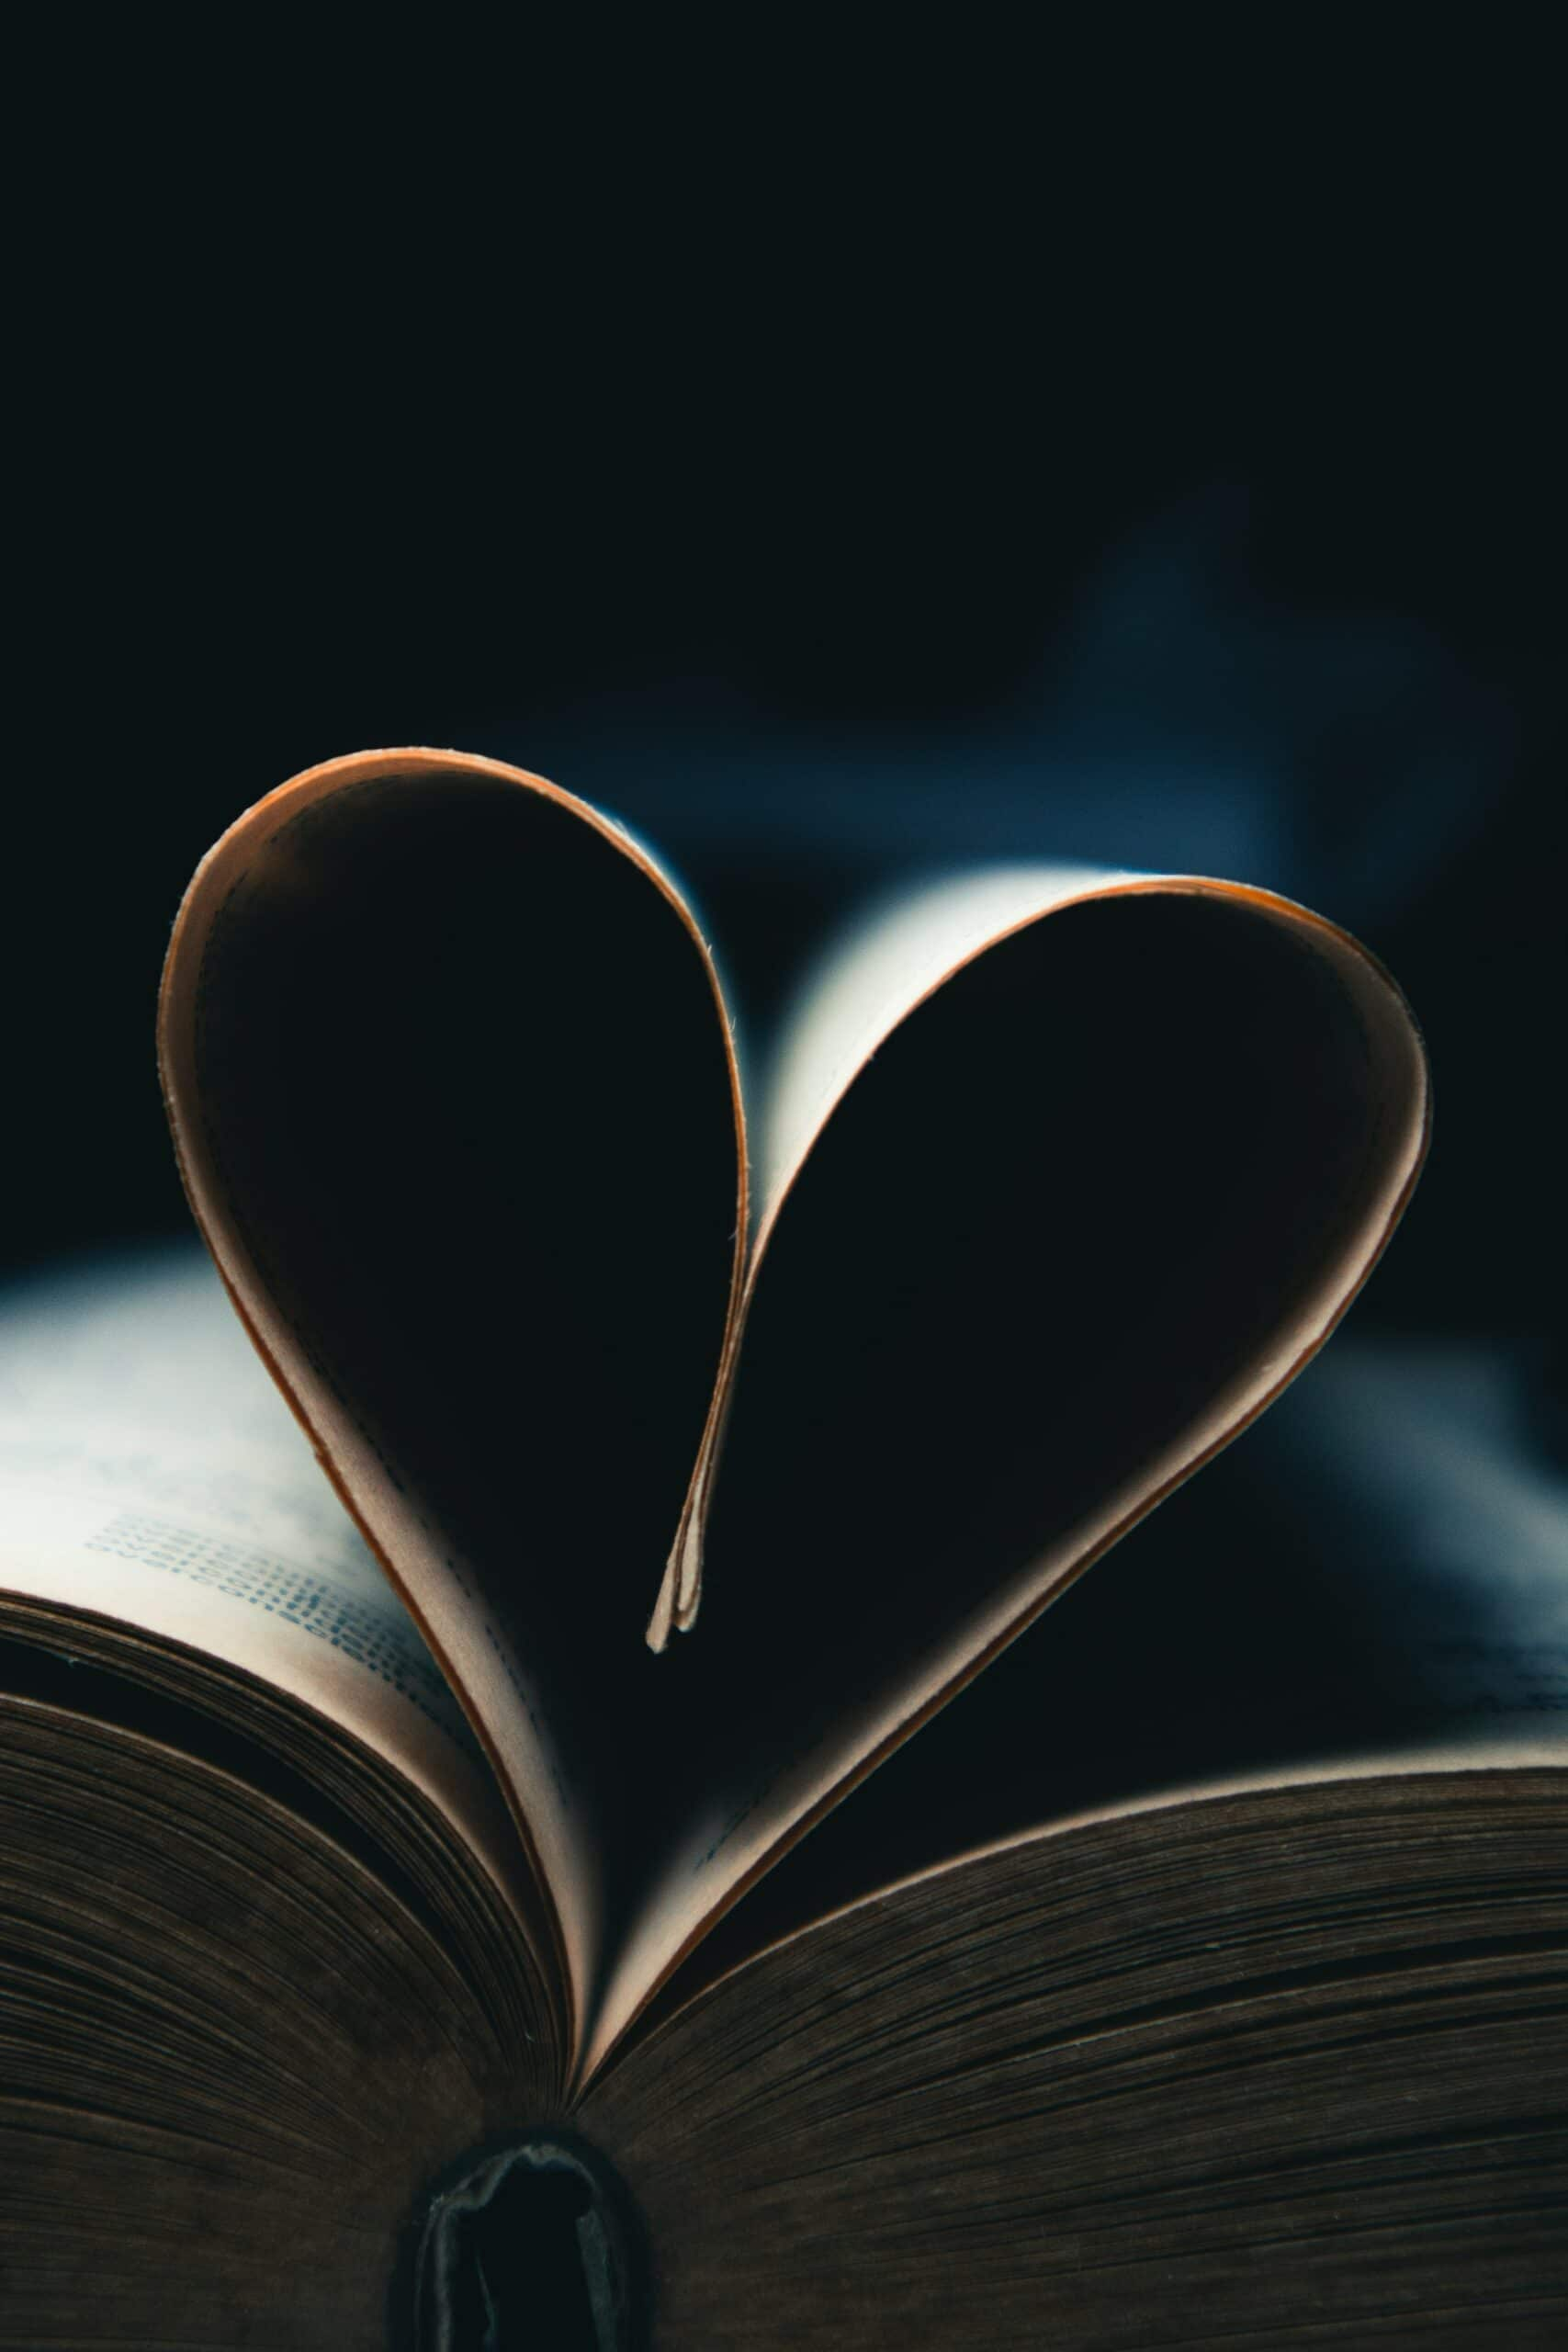 Why Are We Drawn to Love Stories?